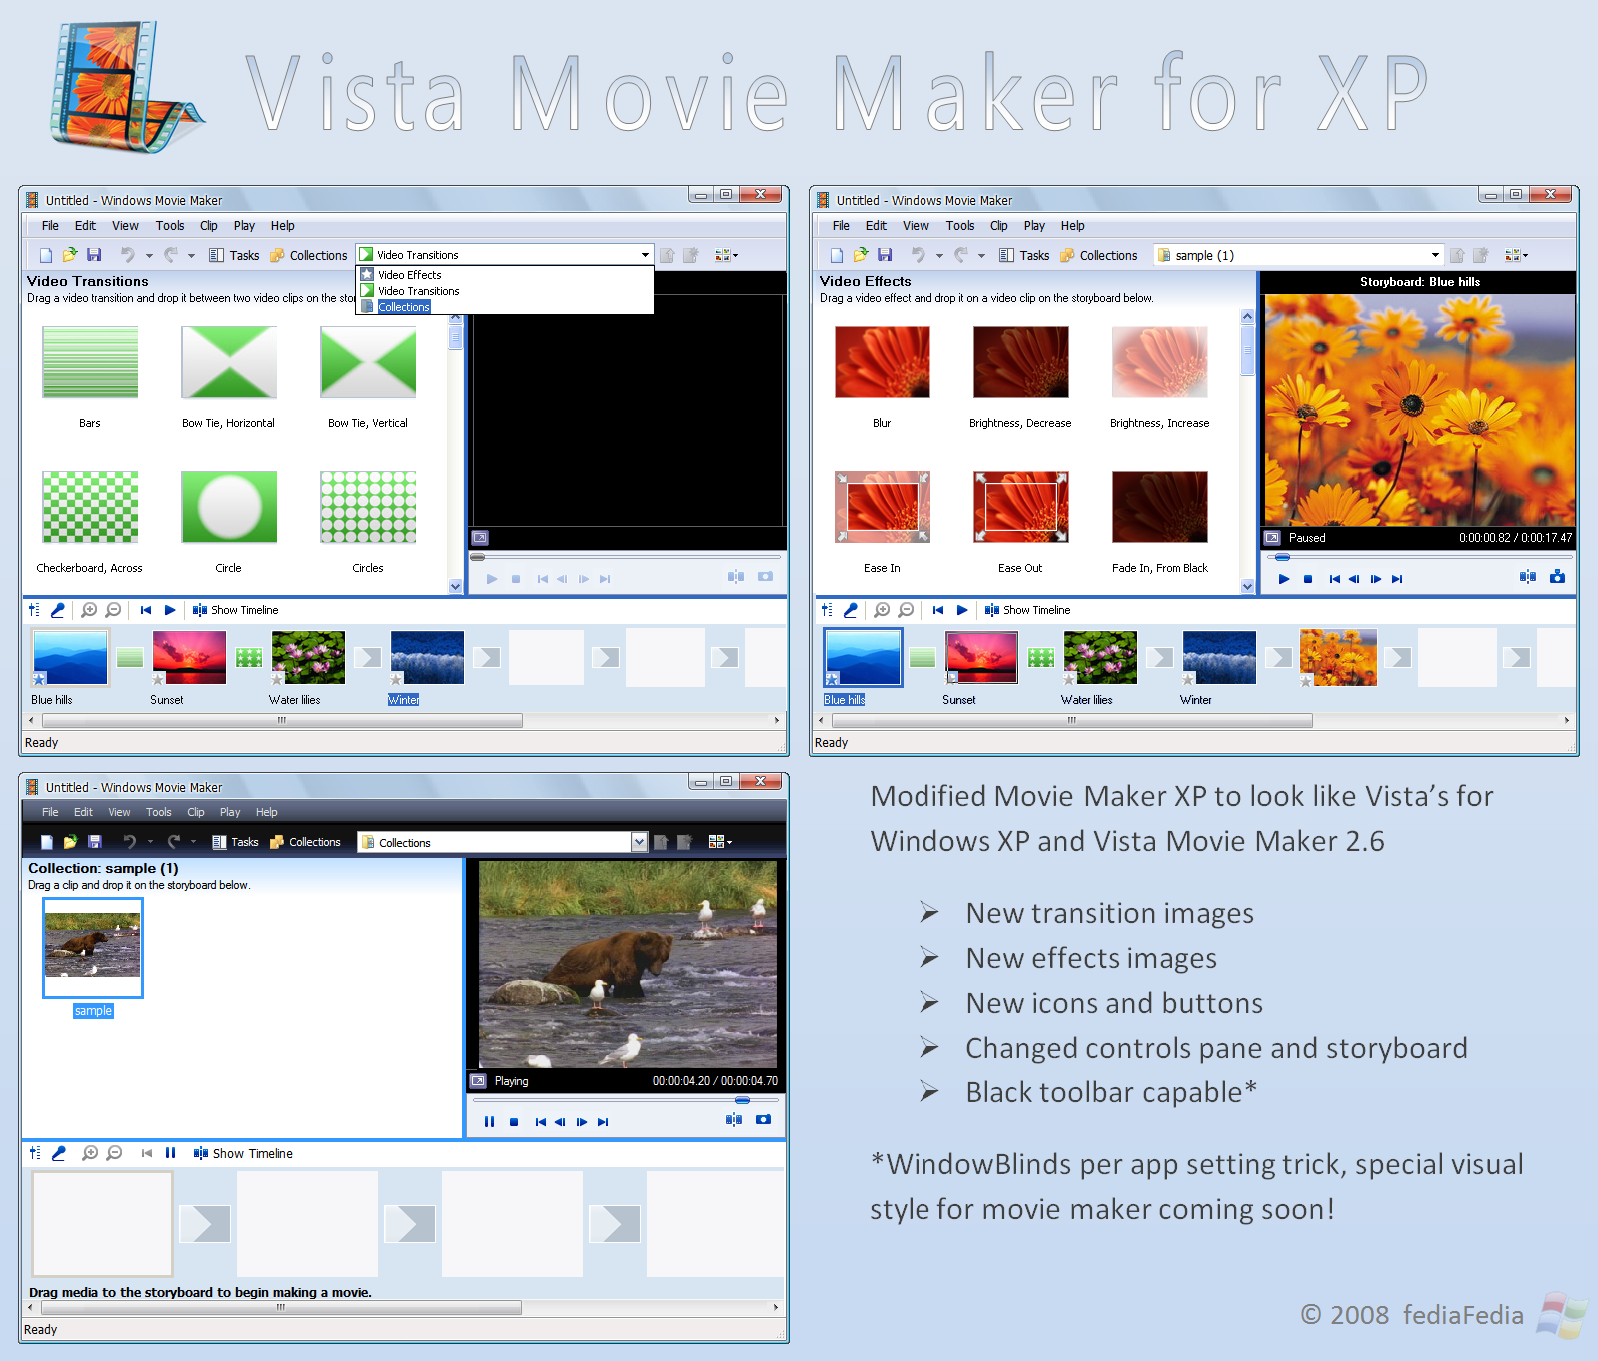 vistas moviemaker for xp by fediafedia on deviantart